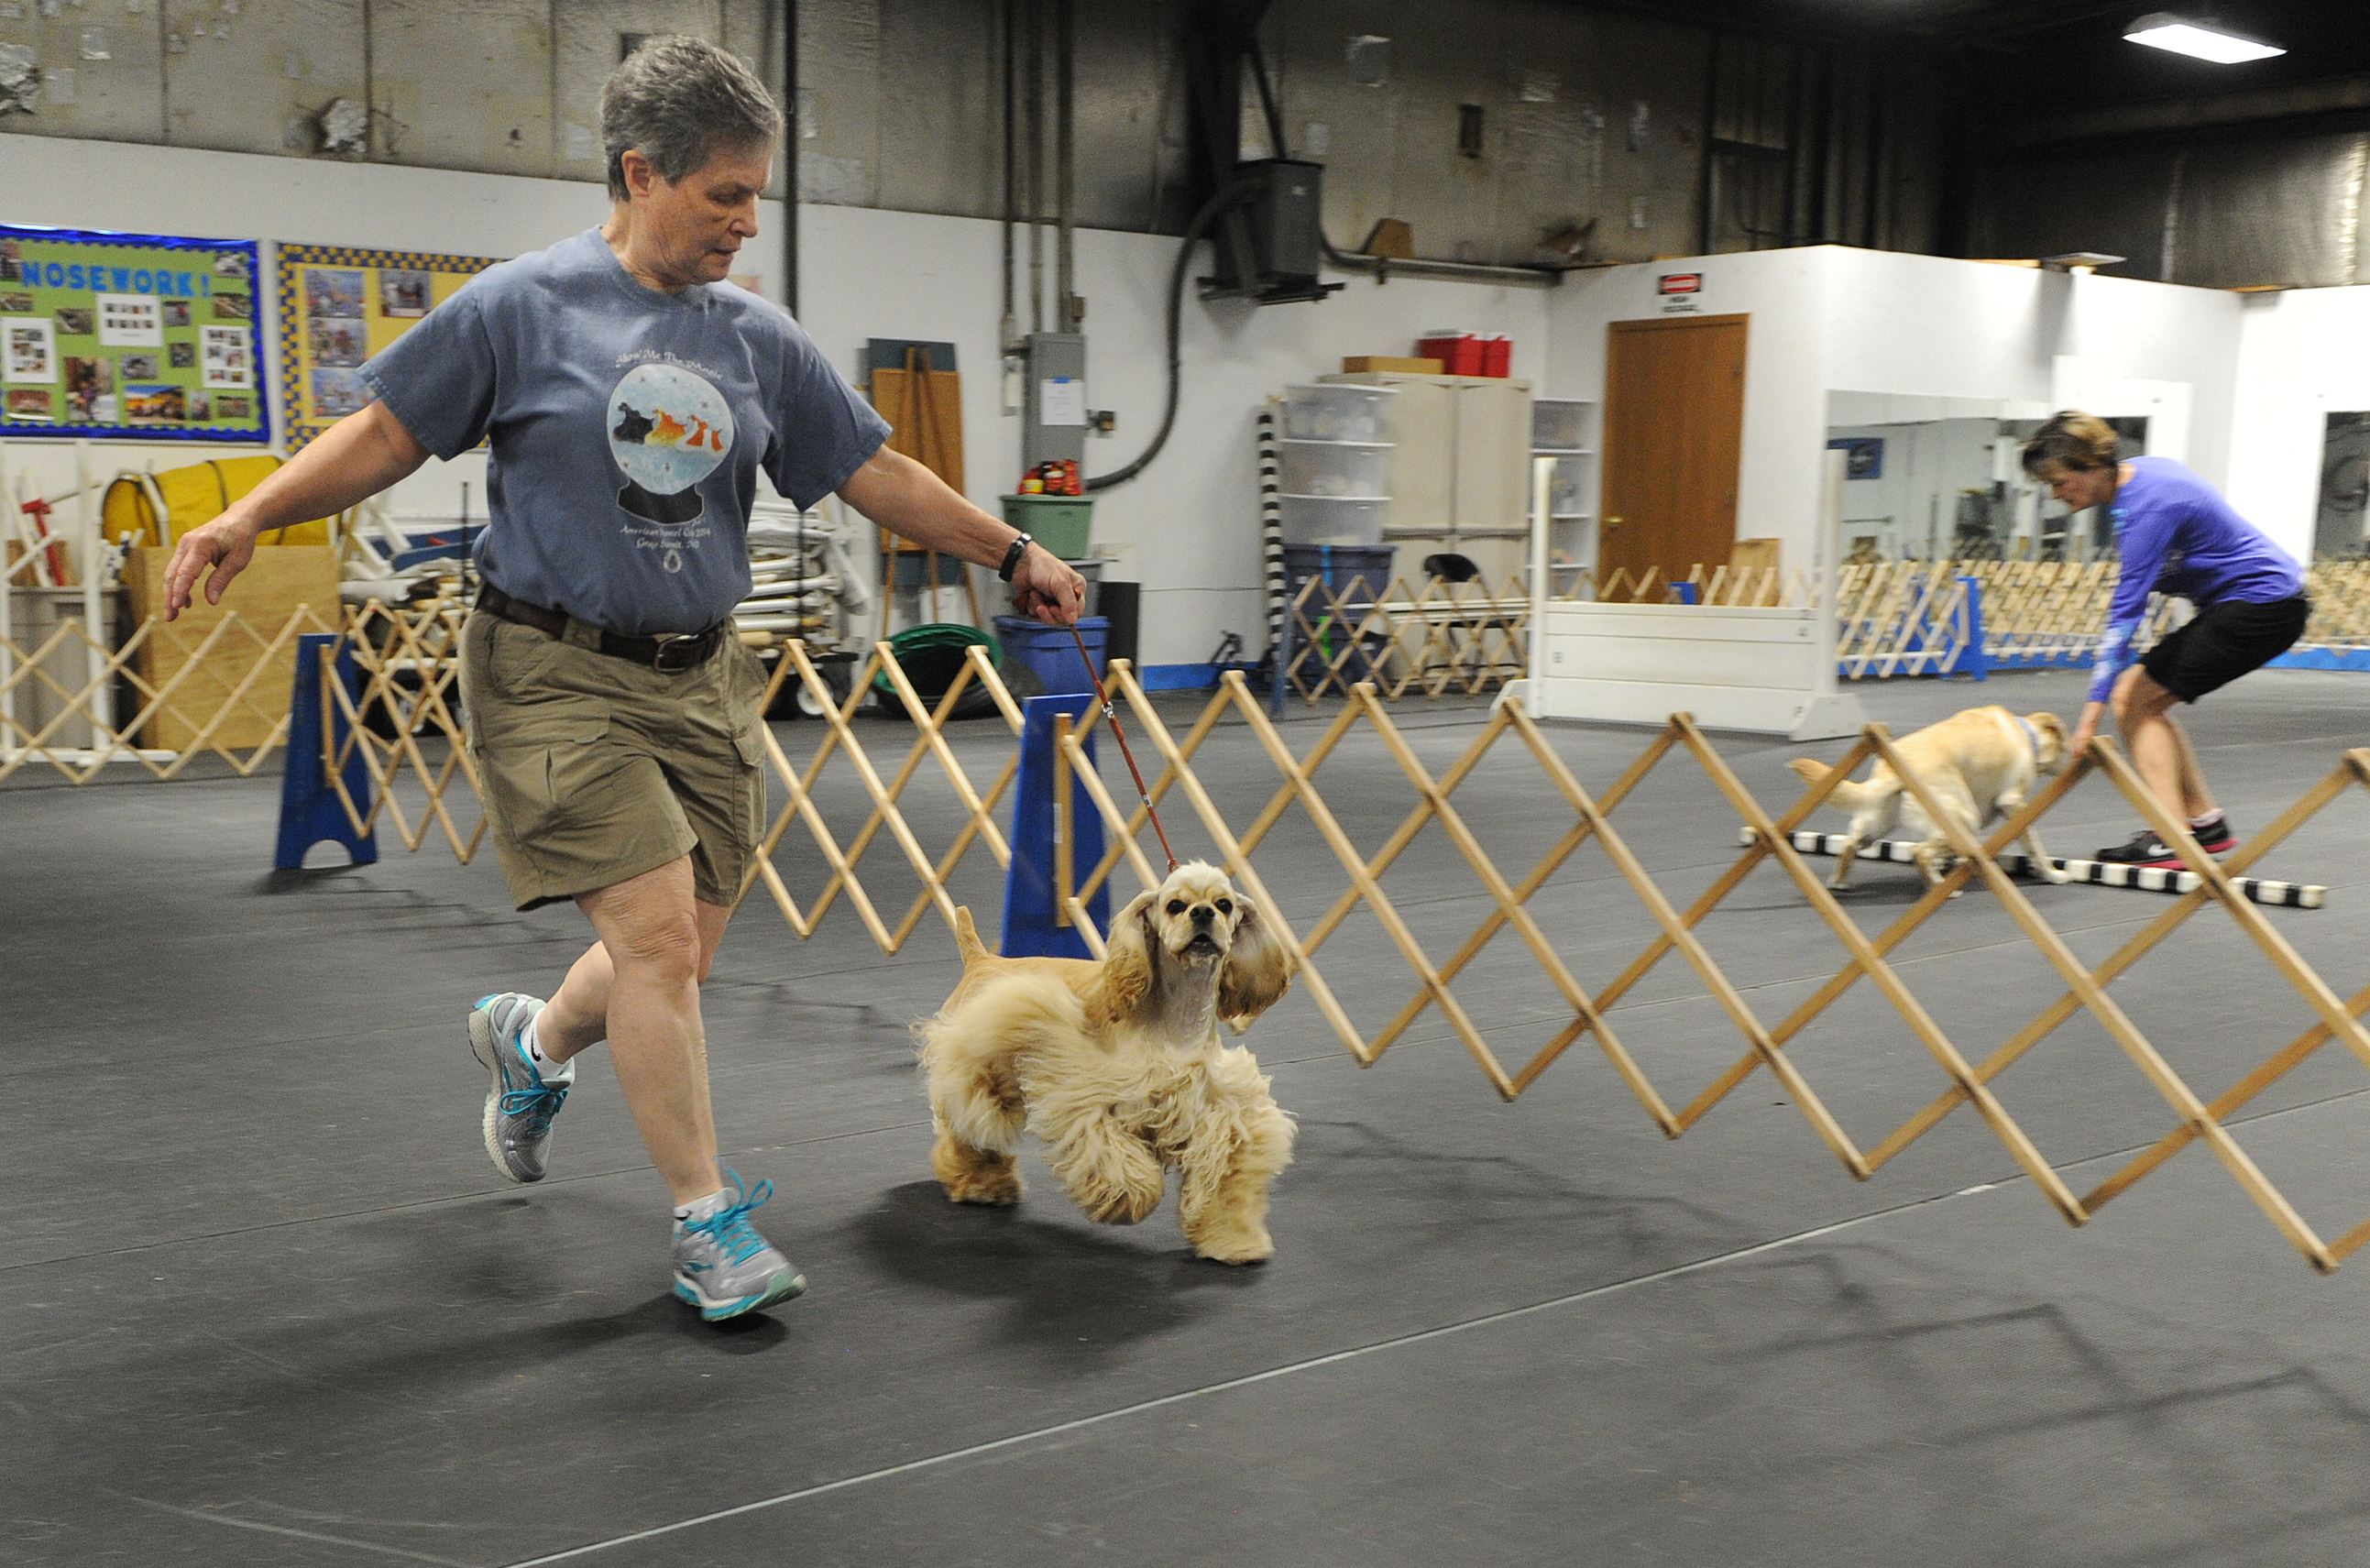 Westmoreland County Obedience Training Club Linda Honspeterger of Penn Hills trains with Cocker Spaniel Karma at the Westmoreland County Obedience Training Club in Delmont.